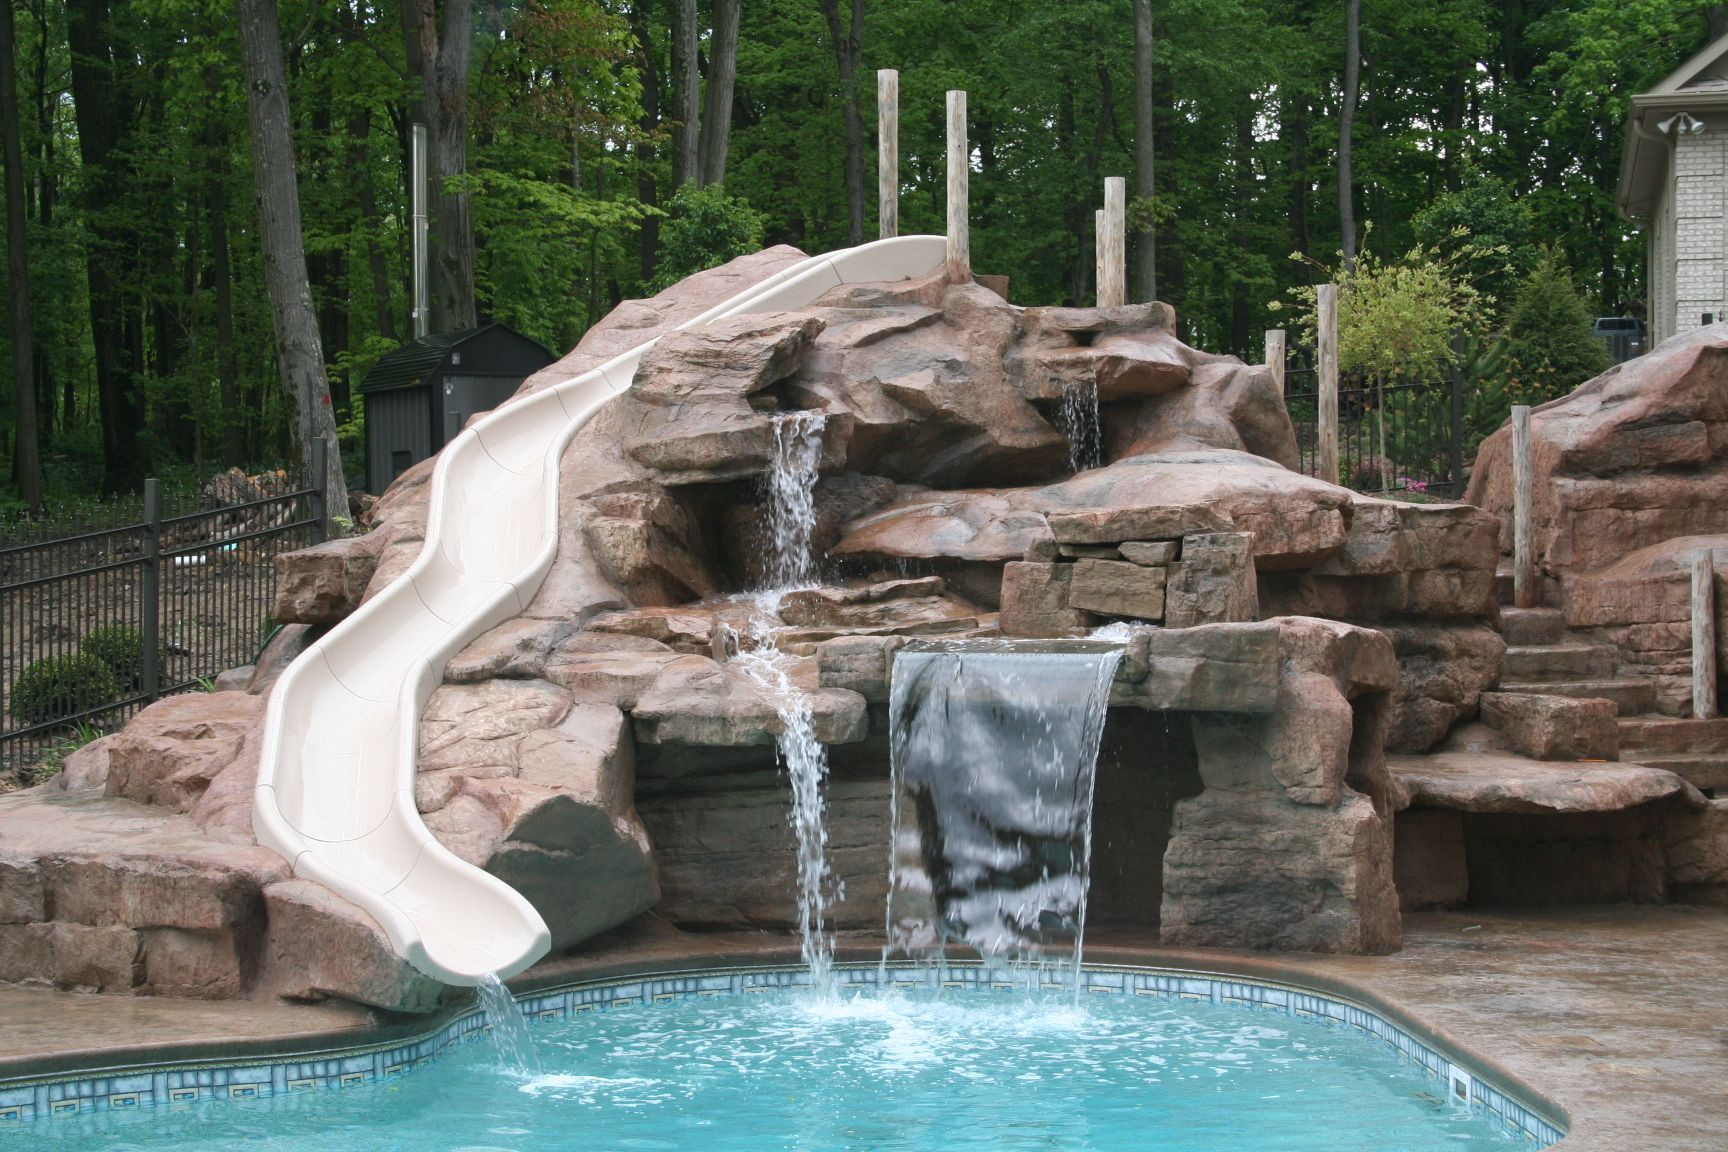 I Will Someday Have A Fancy Pool, And I Want A Waterfall And A Slide, Too.  And A Pool Man To Care For It All. ...